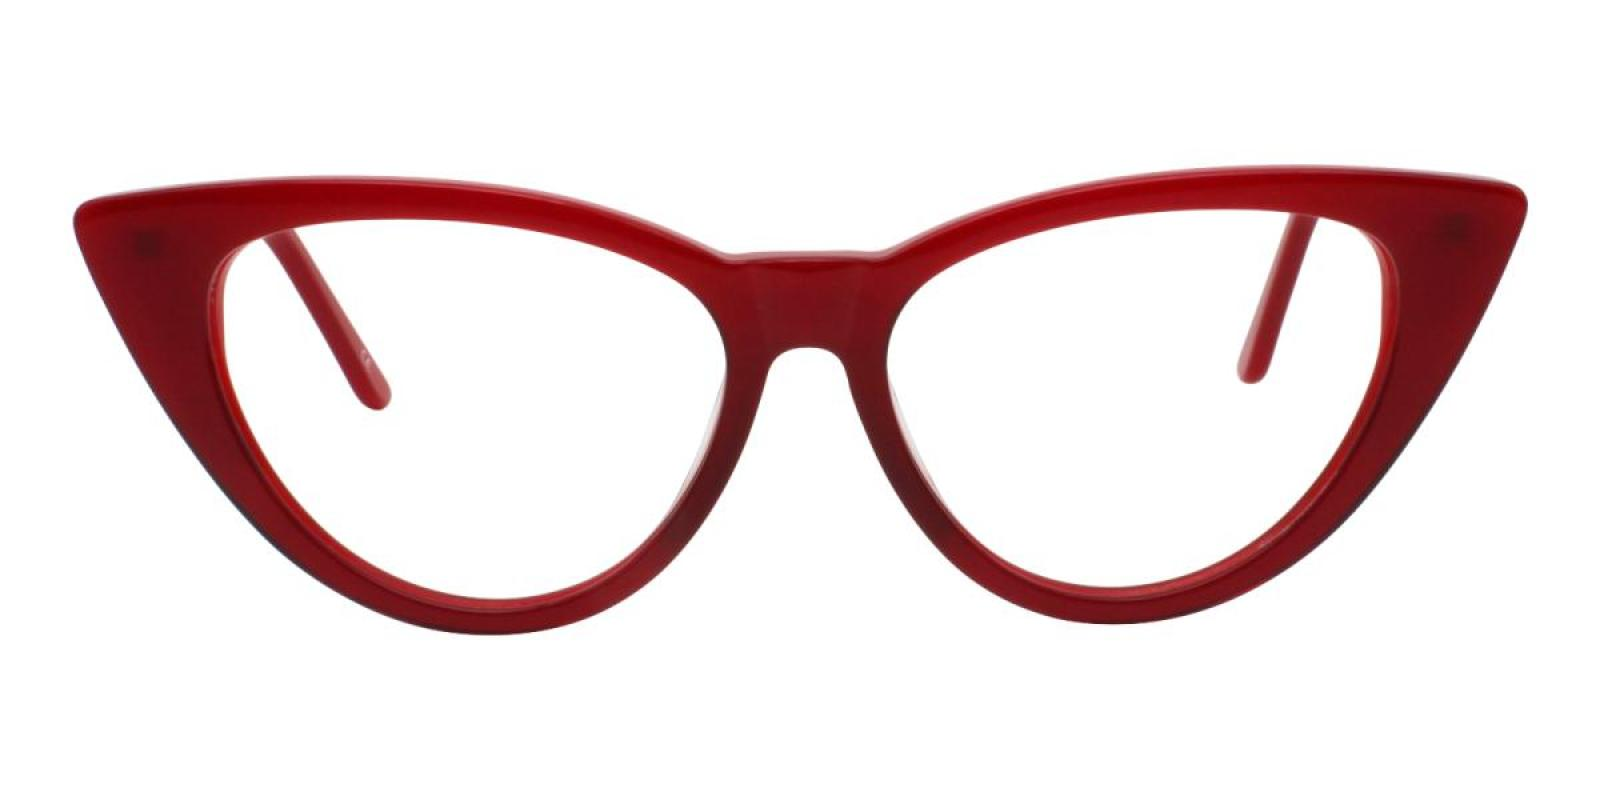 Charm-Red-Cat-Acetate-Eyeglasses-additional2